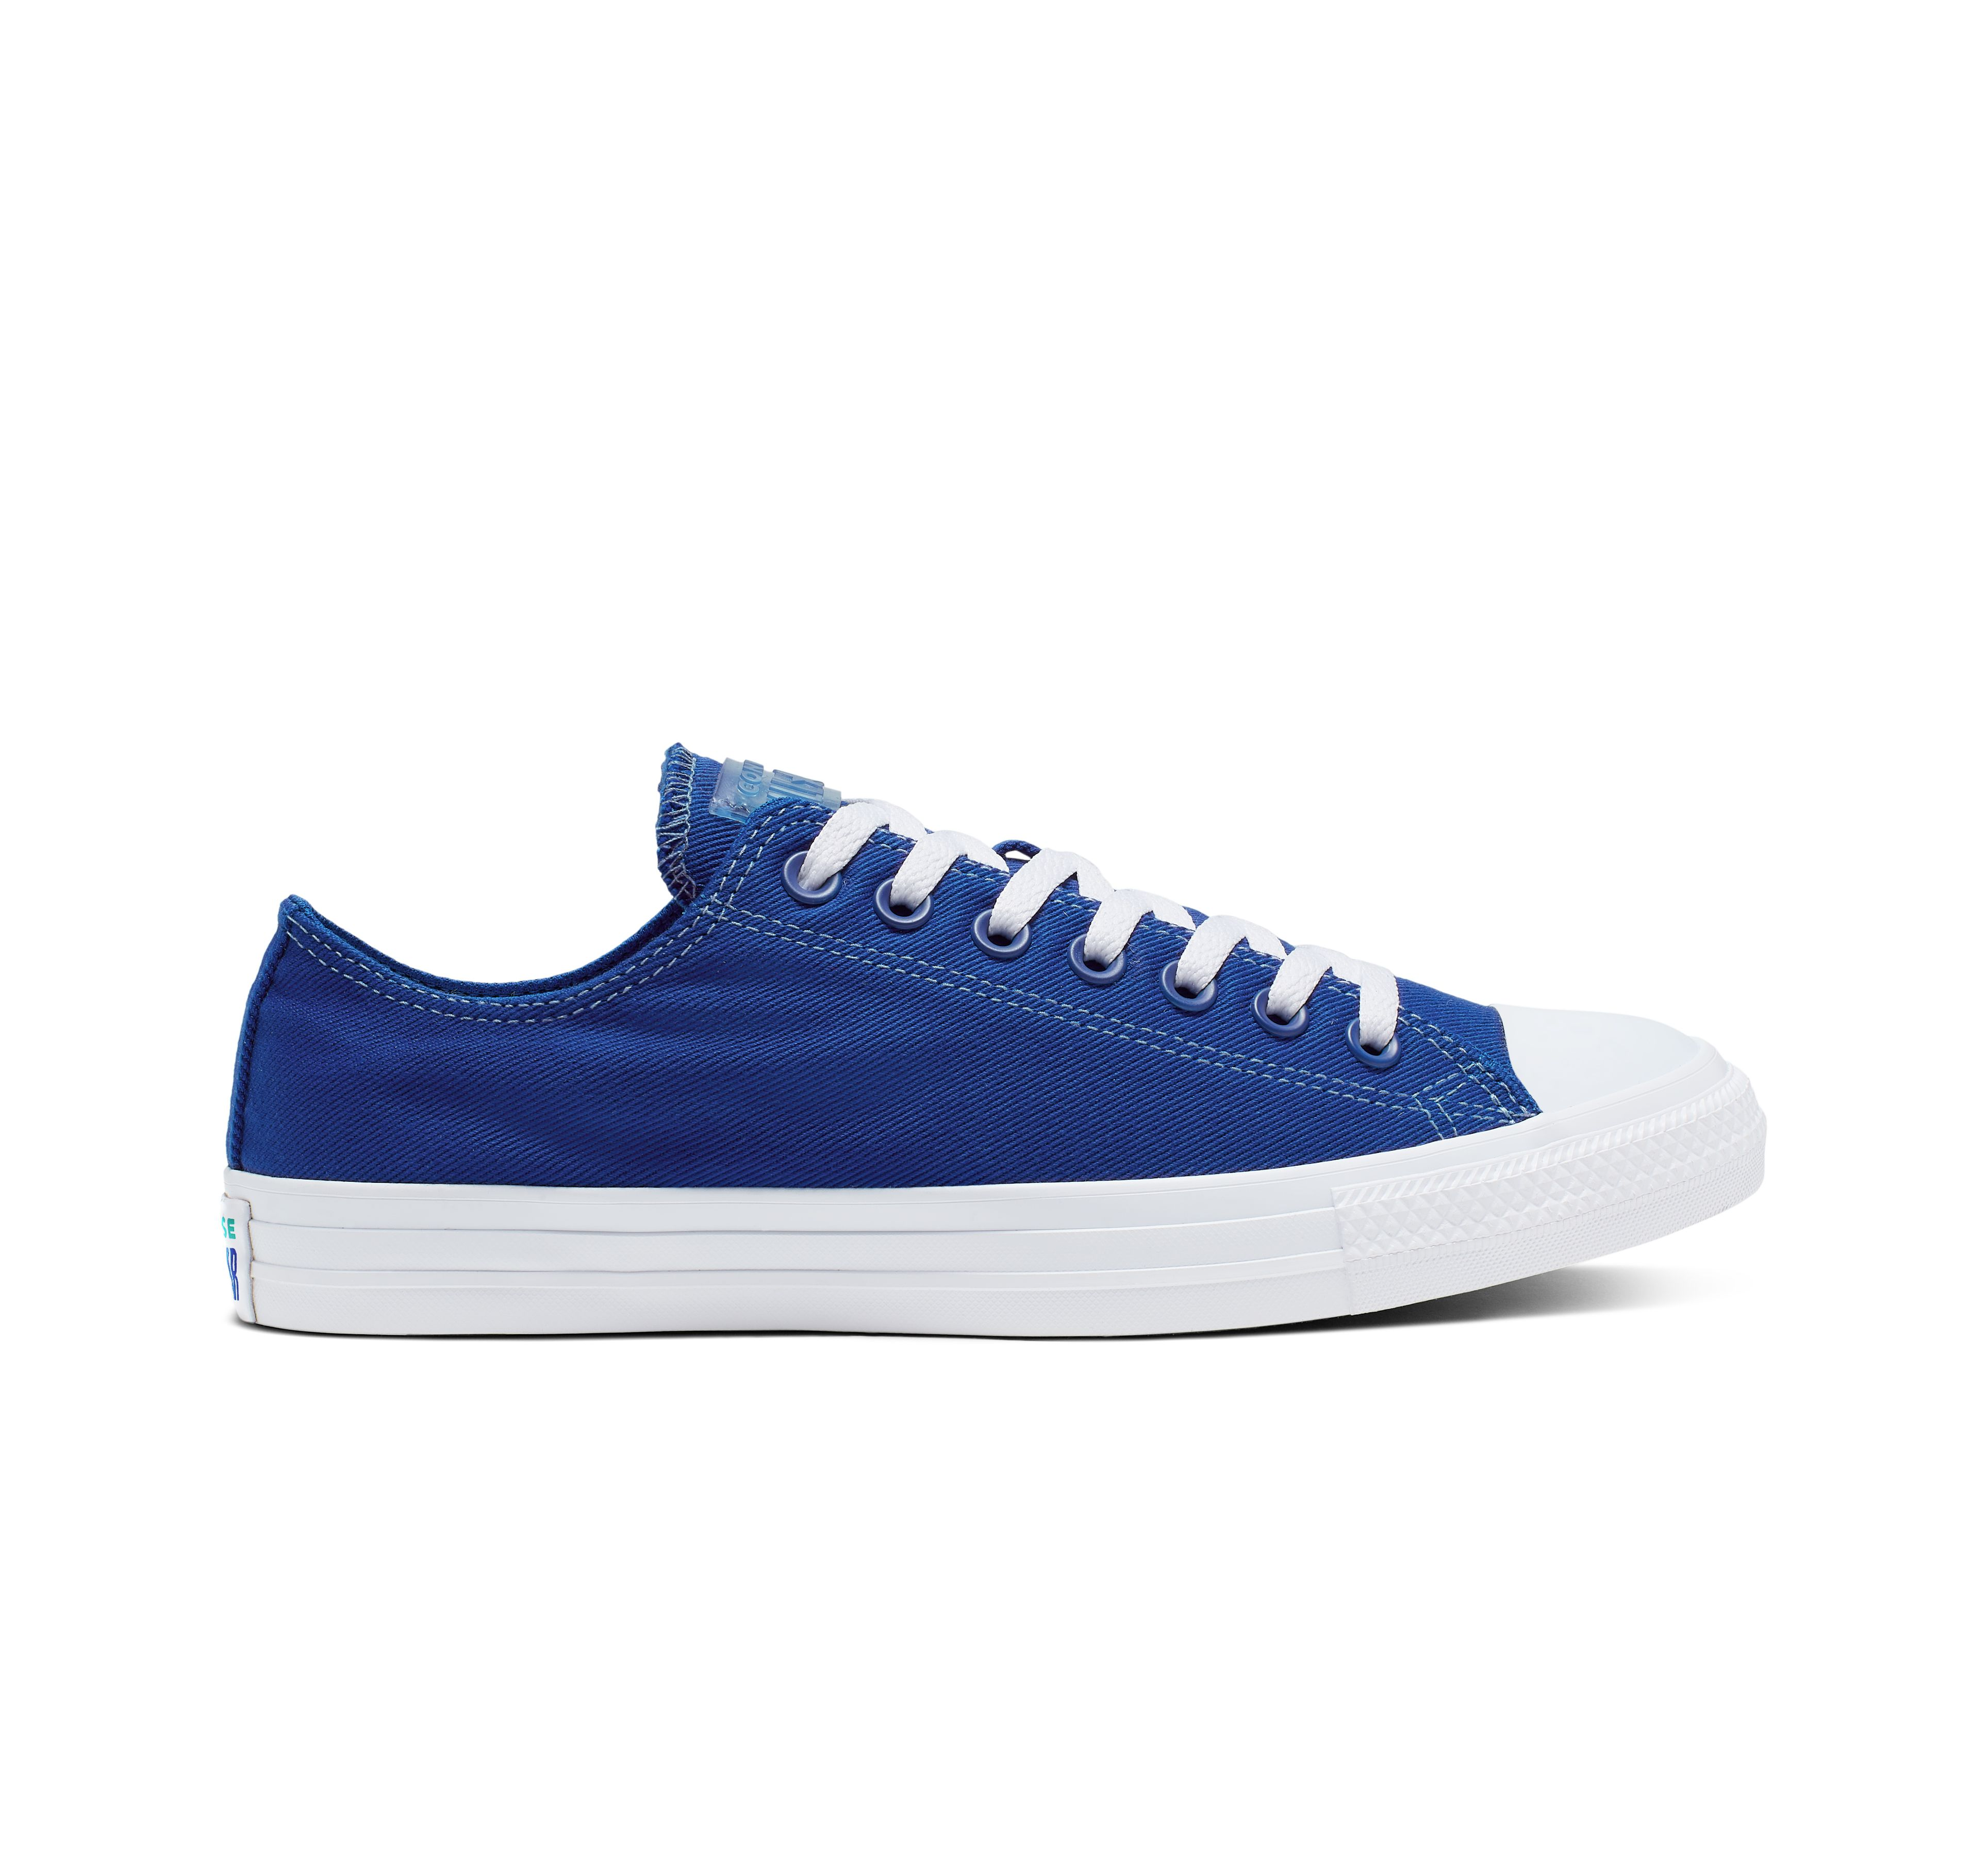 Chuck Taylor All Star Space Racer Low Top   Chuck taylor all